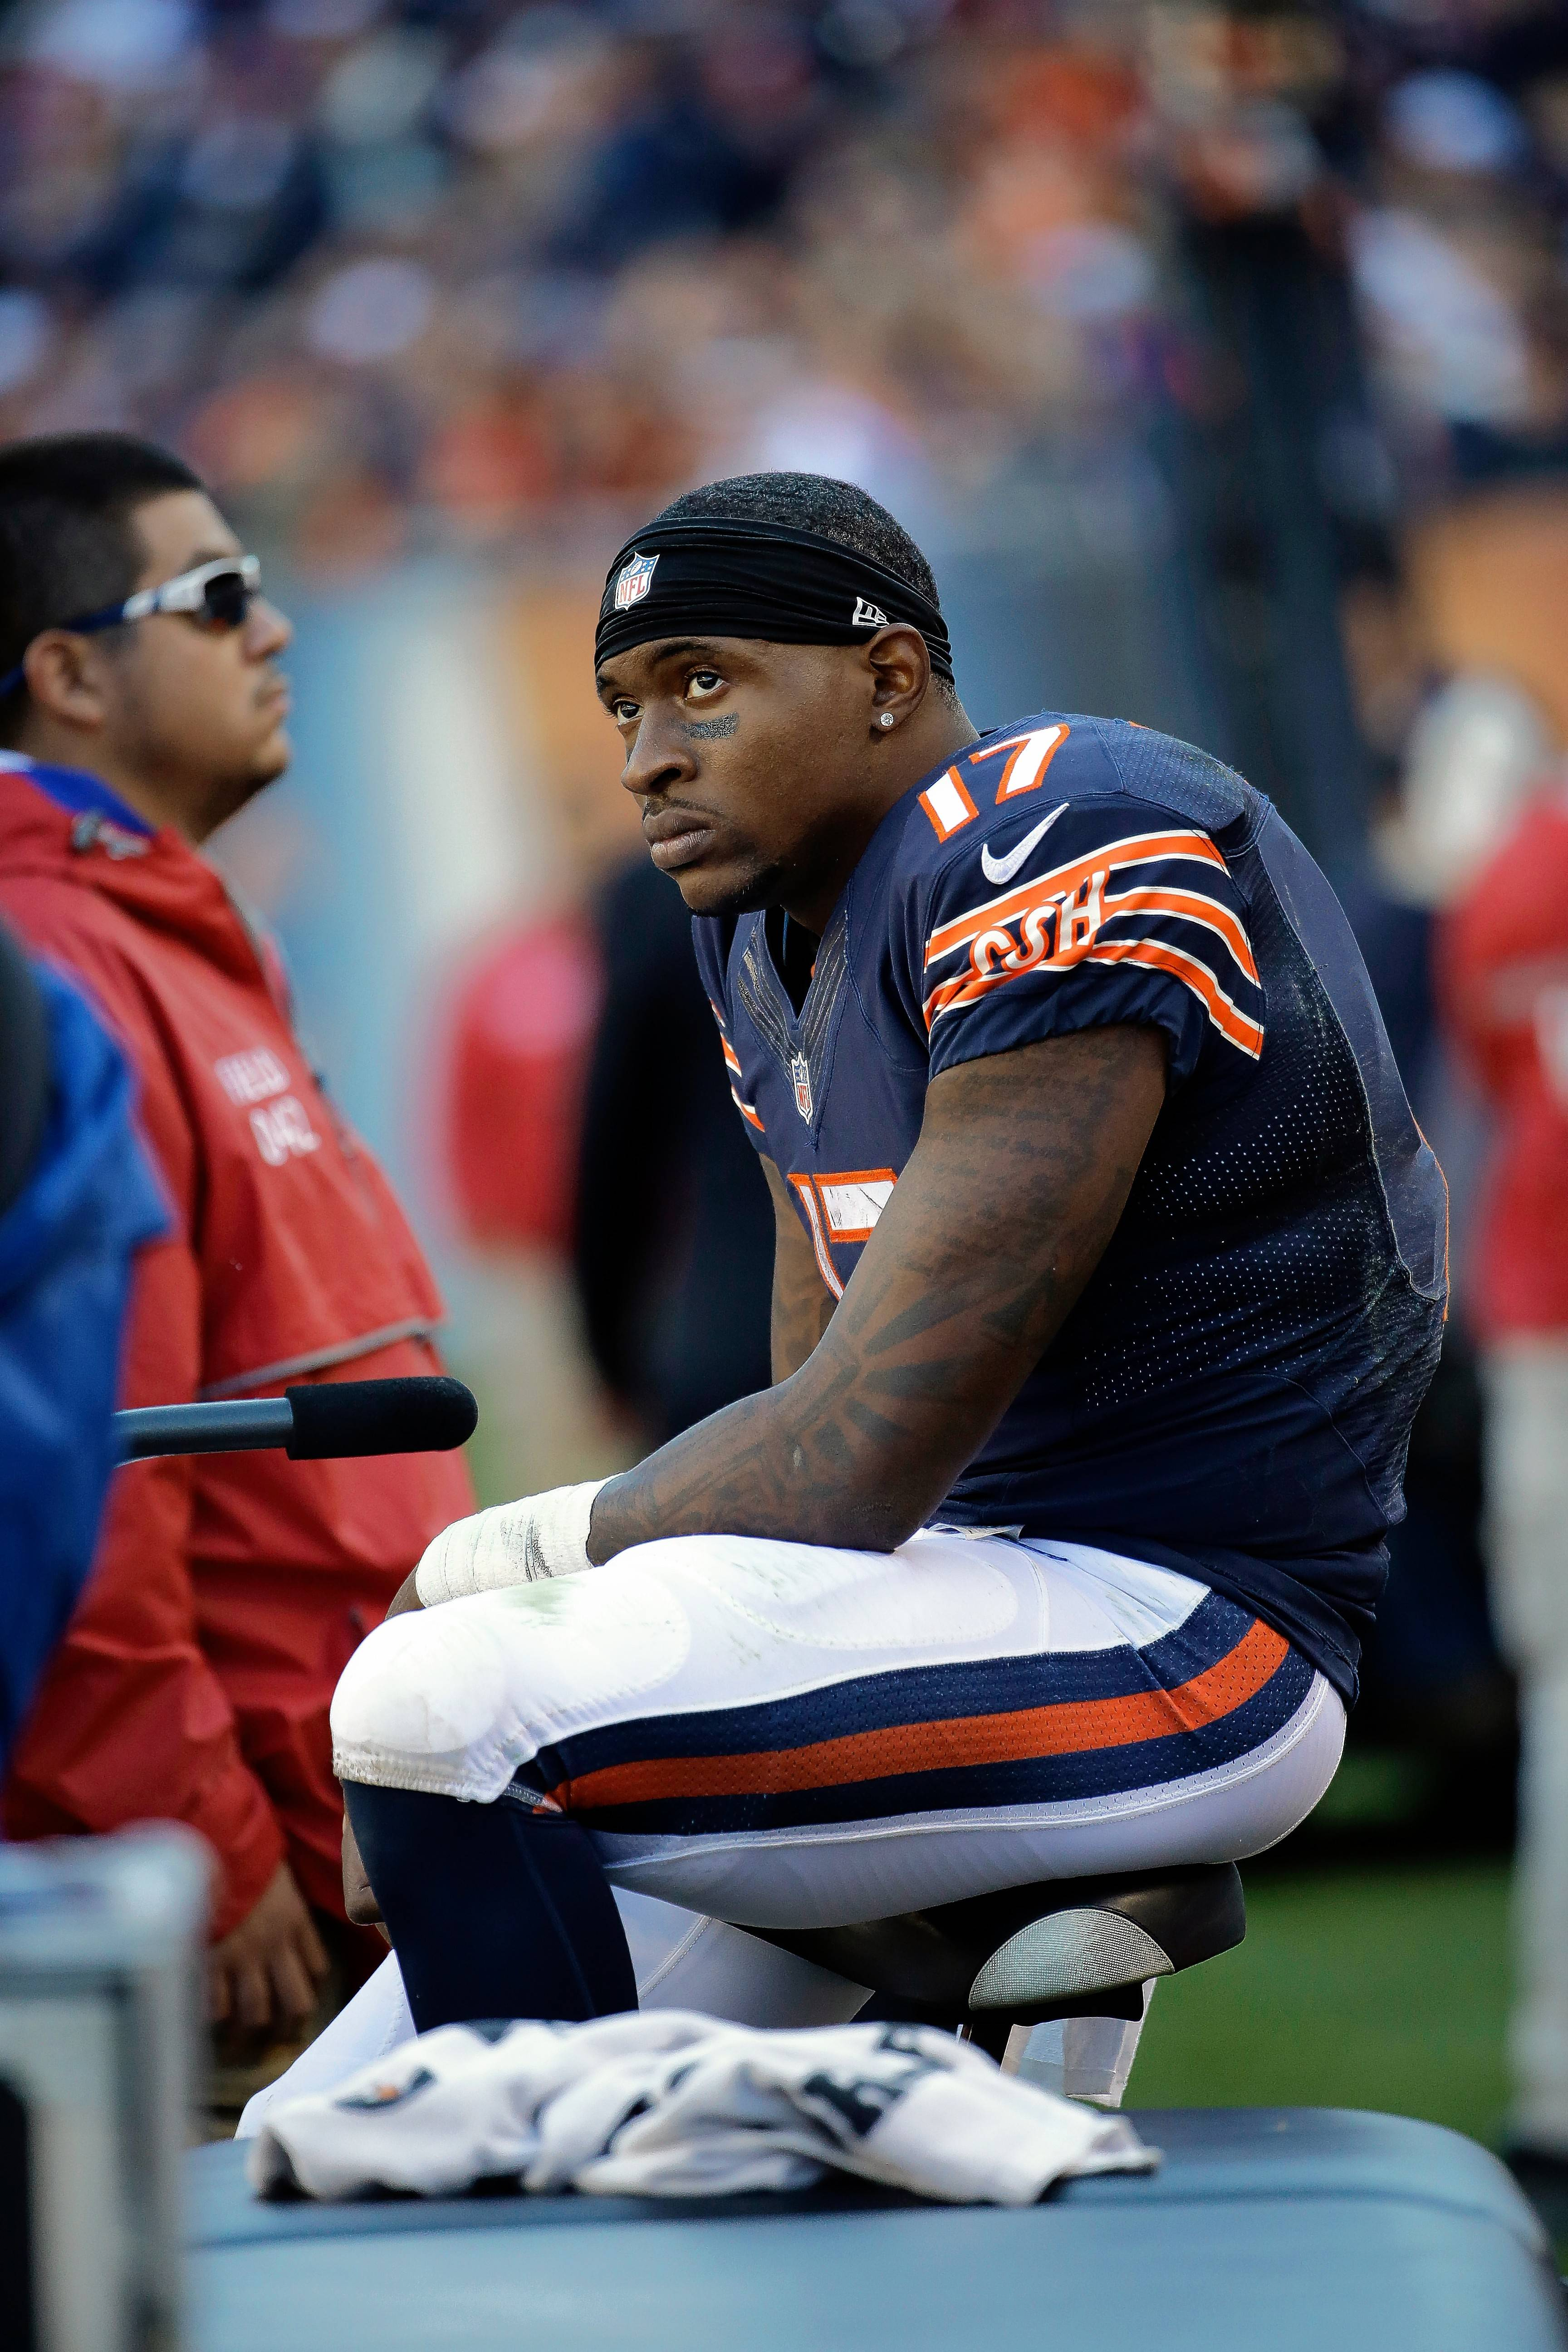 While many of his teammates attend the voluntary training programs at Halas Hall, Bears wide receiver Alshon Jeffery is working out in Florida.